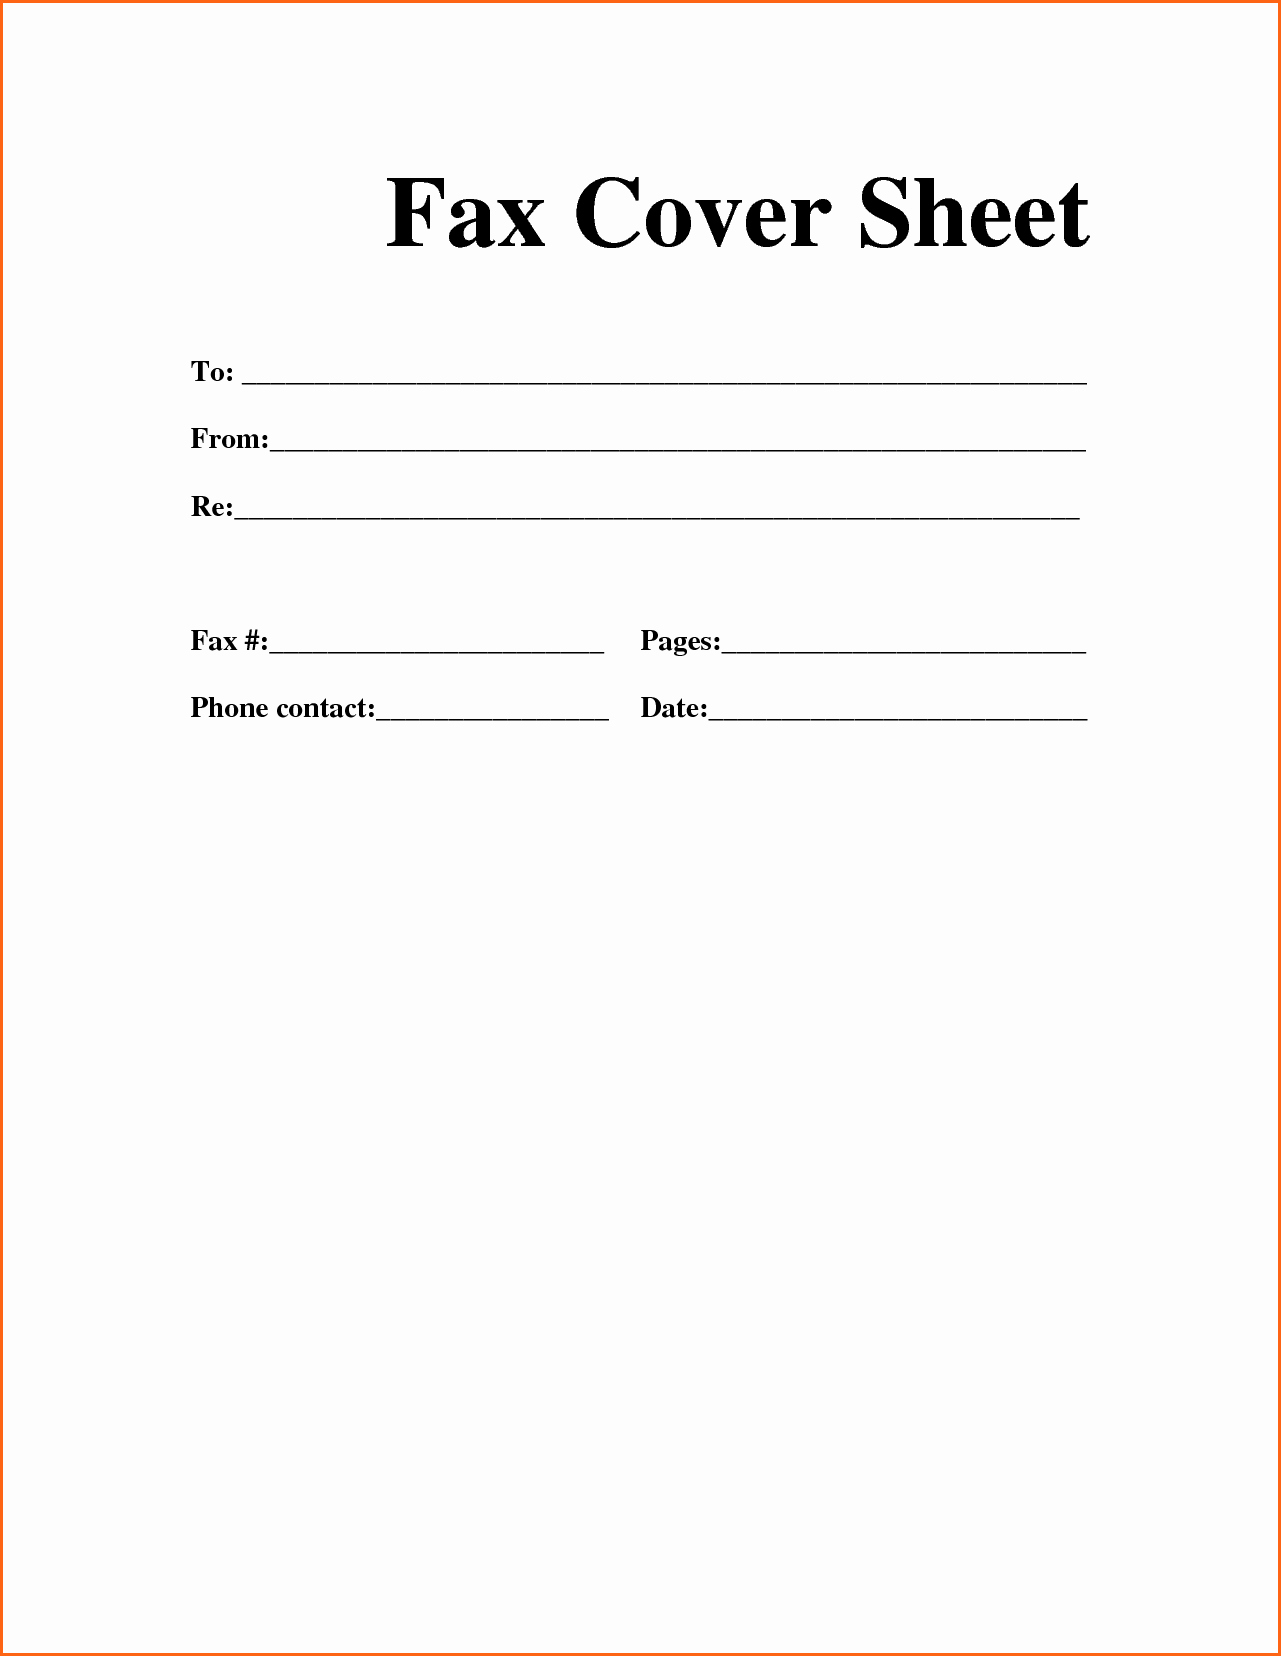 Fax Cover Sheet Printable Free Lovely Printable Fax Cover Sheet Free Fax Cover Sheet Template